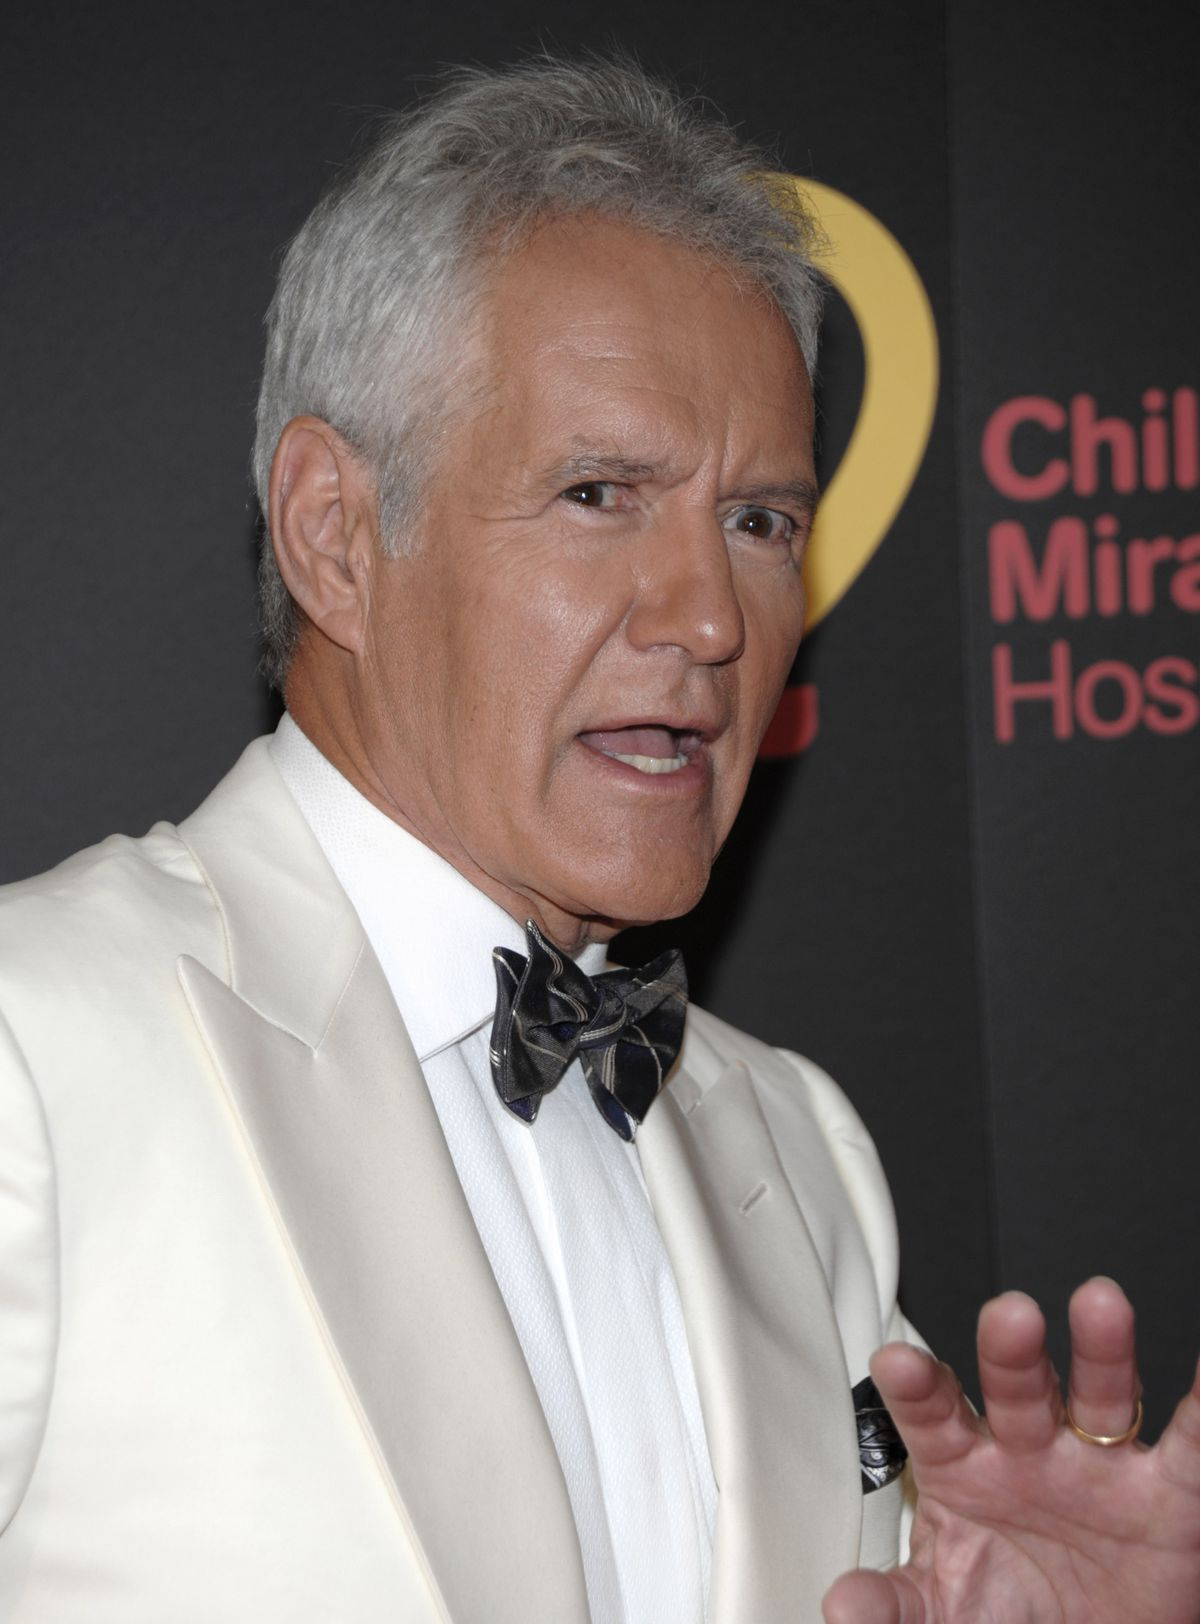 """Television personality Alex Trebek arrives at the 38th Annual Daytime Emmy Awards in Las Vegas on Sunday, June 19, 2011. In his recent memoir, Trebek goes well beyond """"Jeopardy!"""" to bring fans into his personal life."""